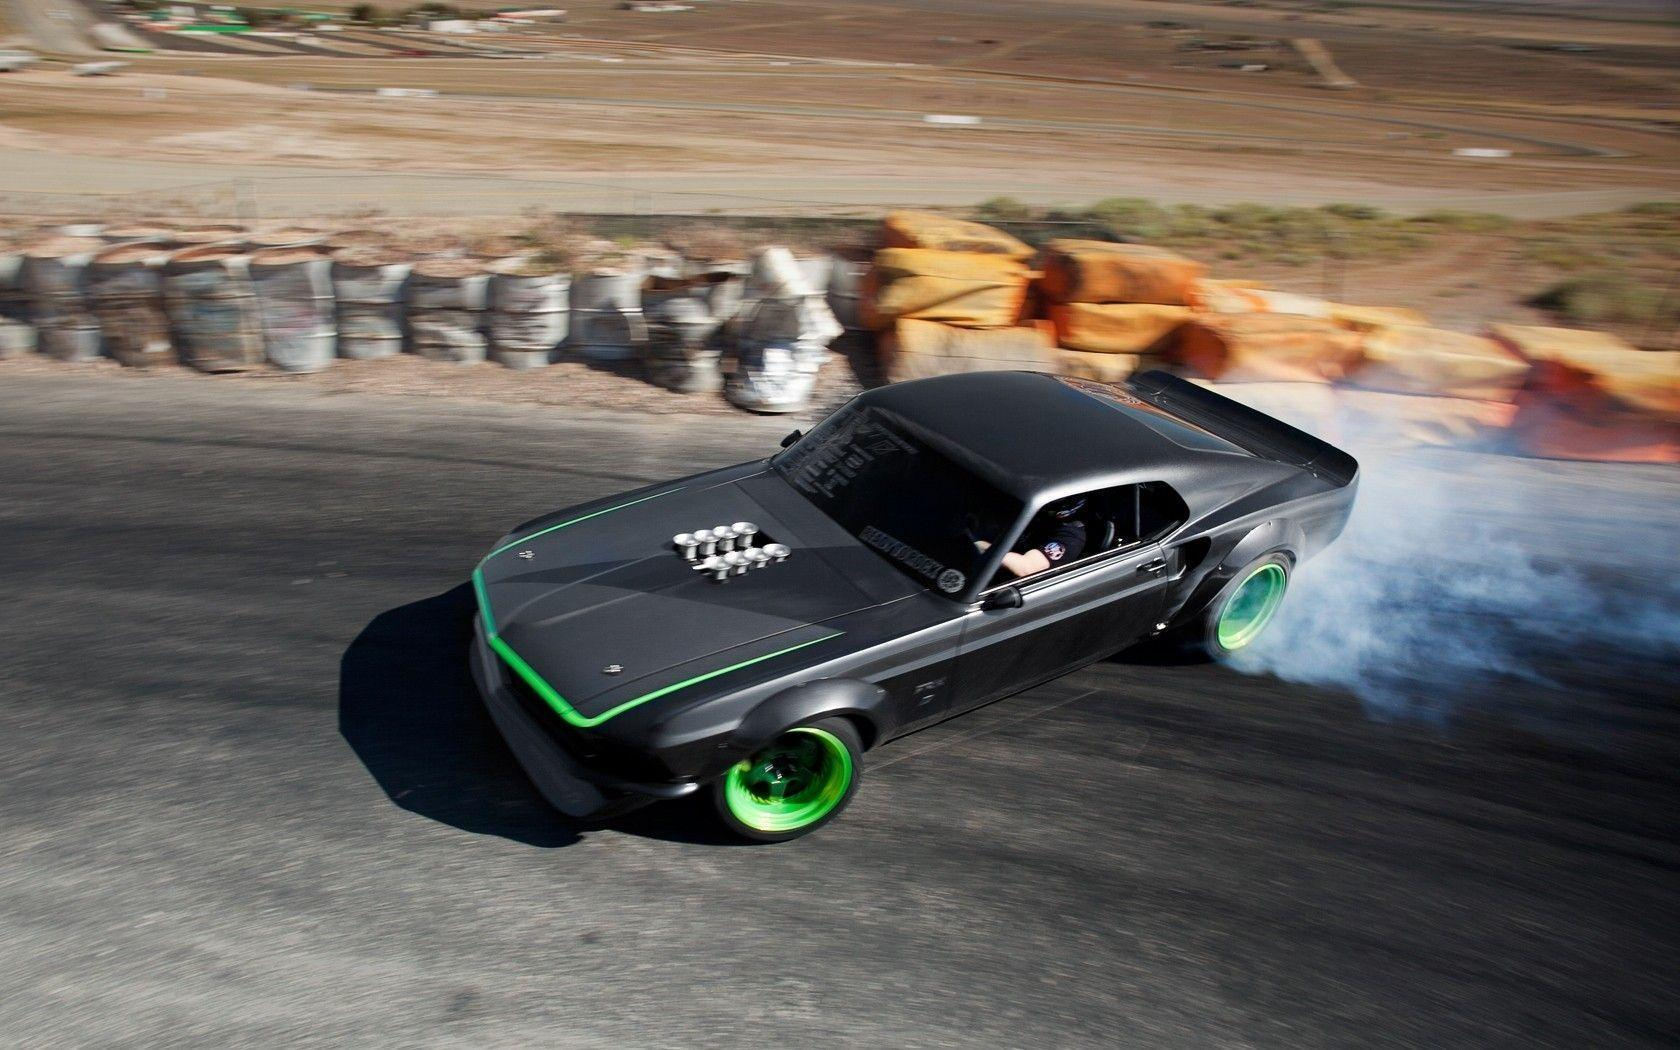 Mustang Drifting Wallpaper Images & Pictures - Becuo